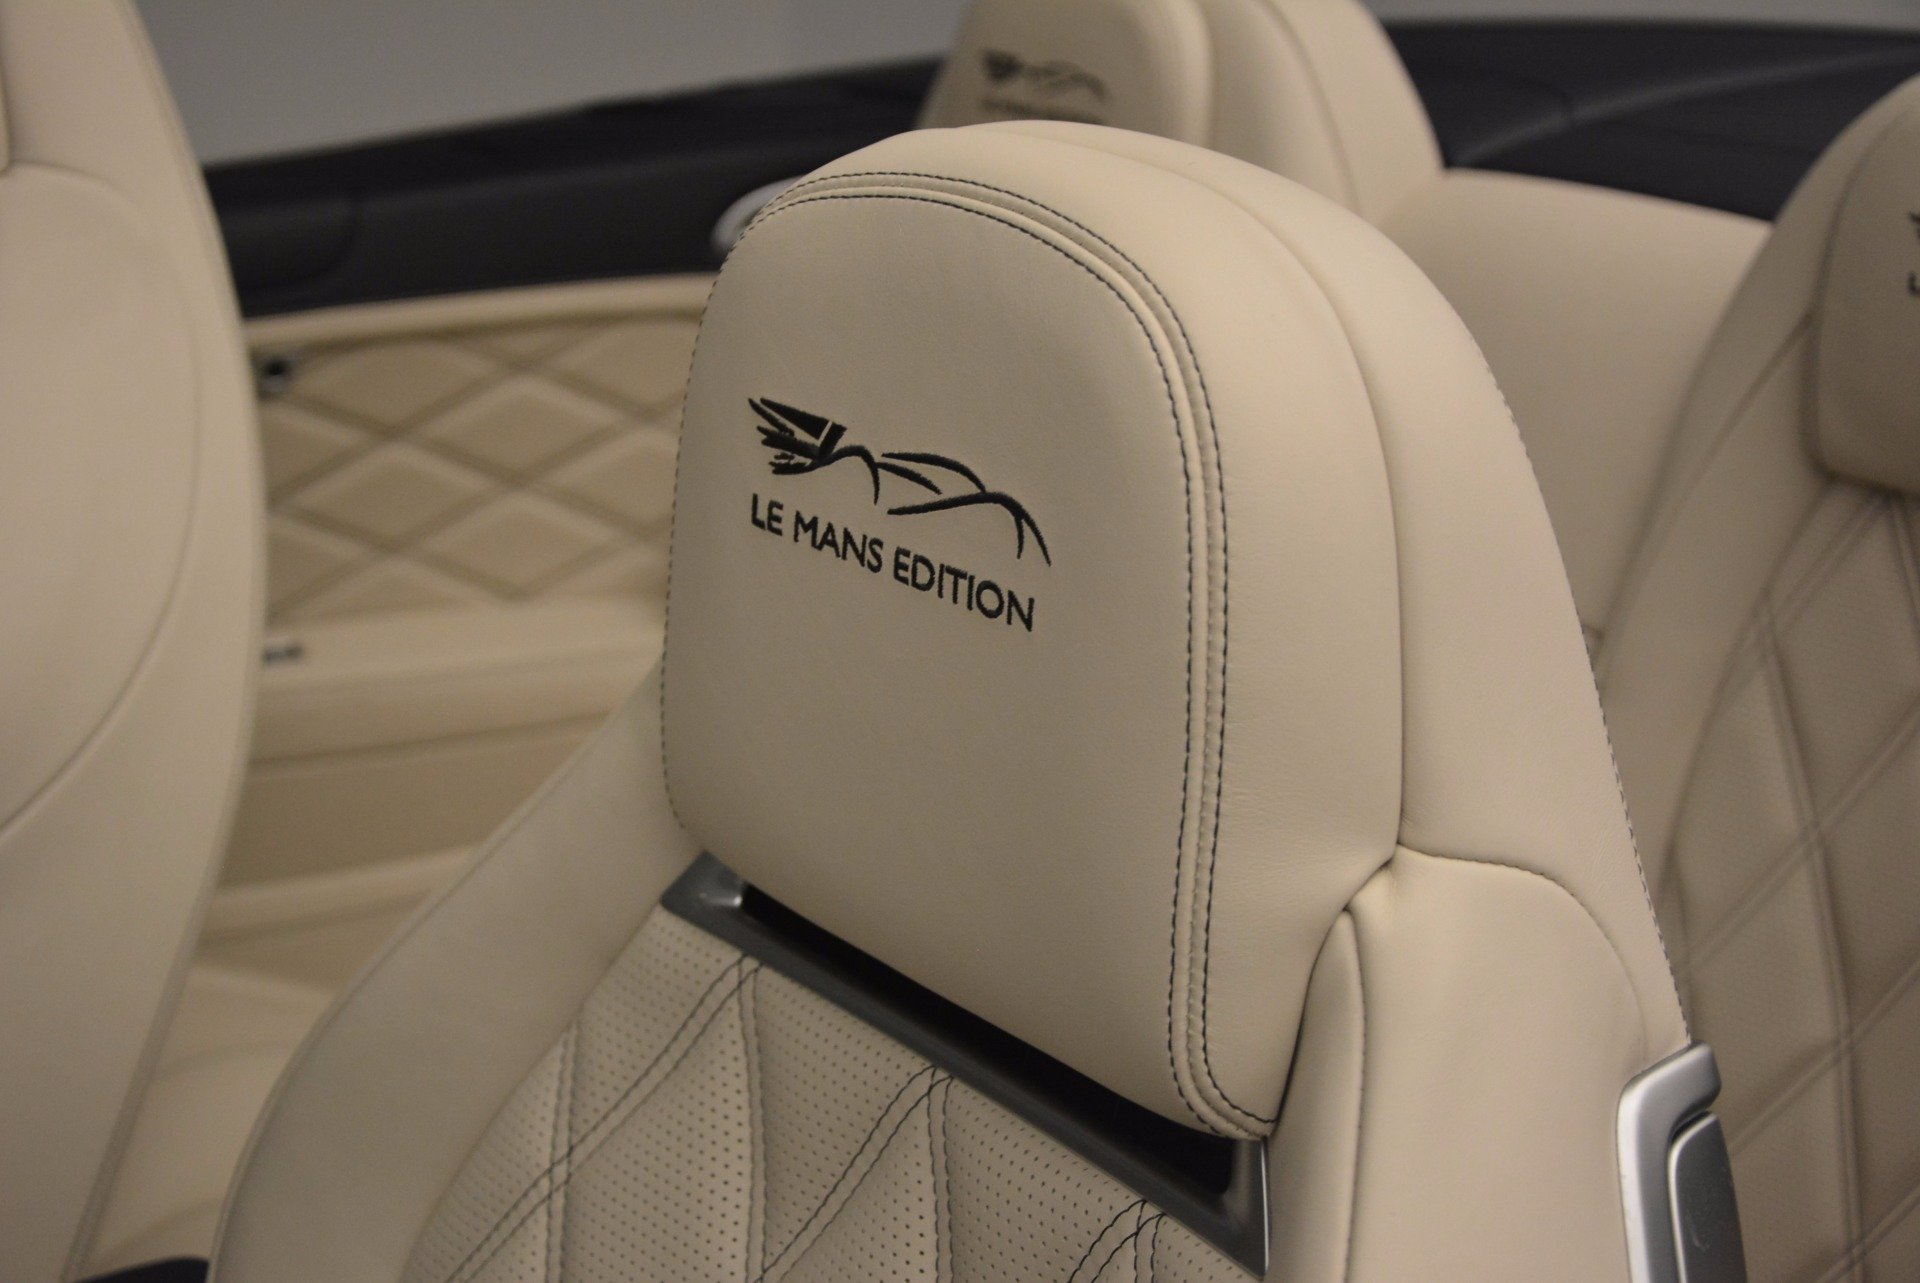 Used 2013 Bentley Continental GT V8 Le Mans Edition, 1 of 48 For Sale In Westport, CT 1288_p36